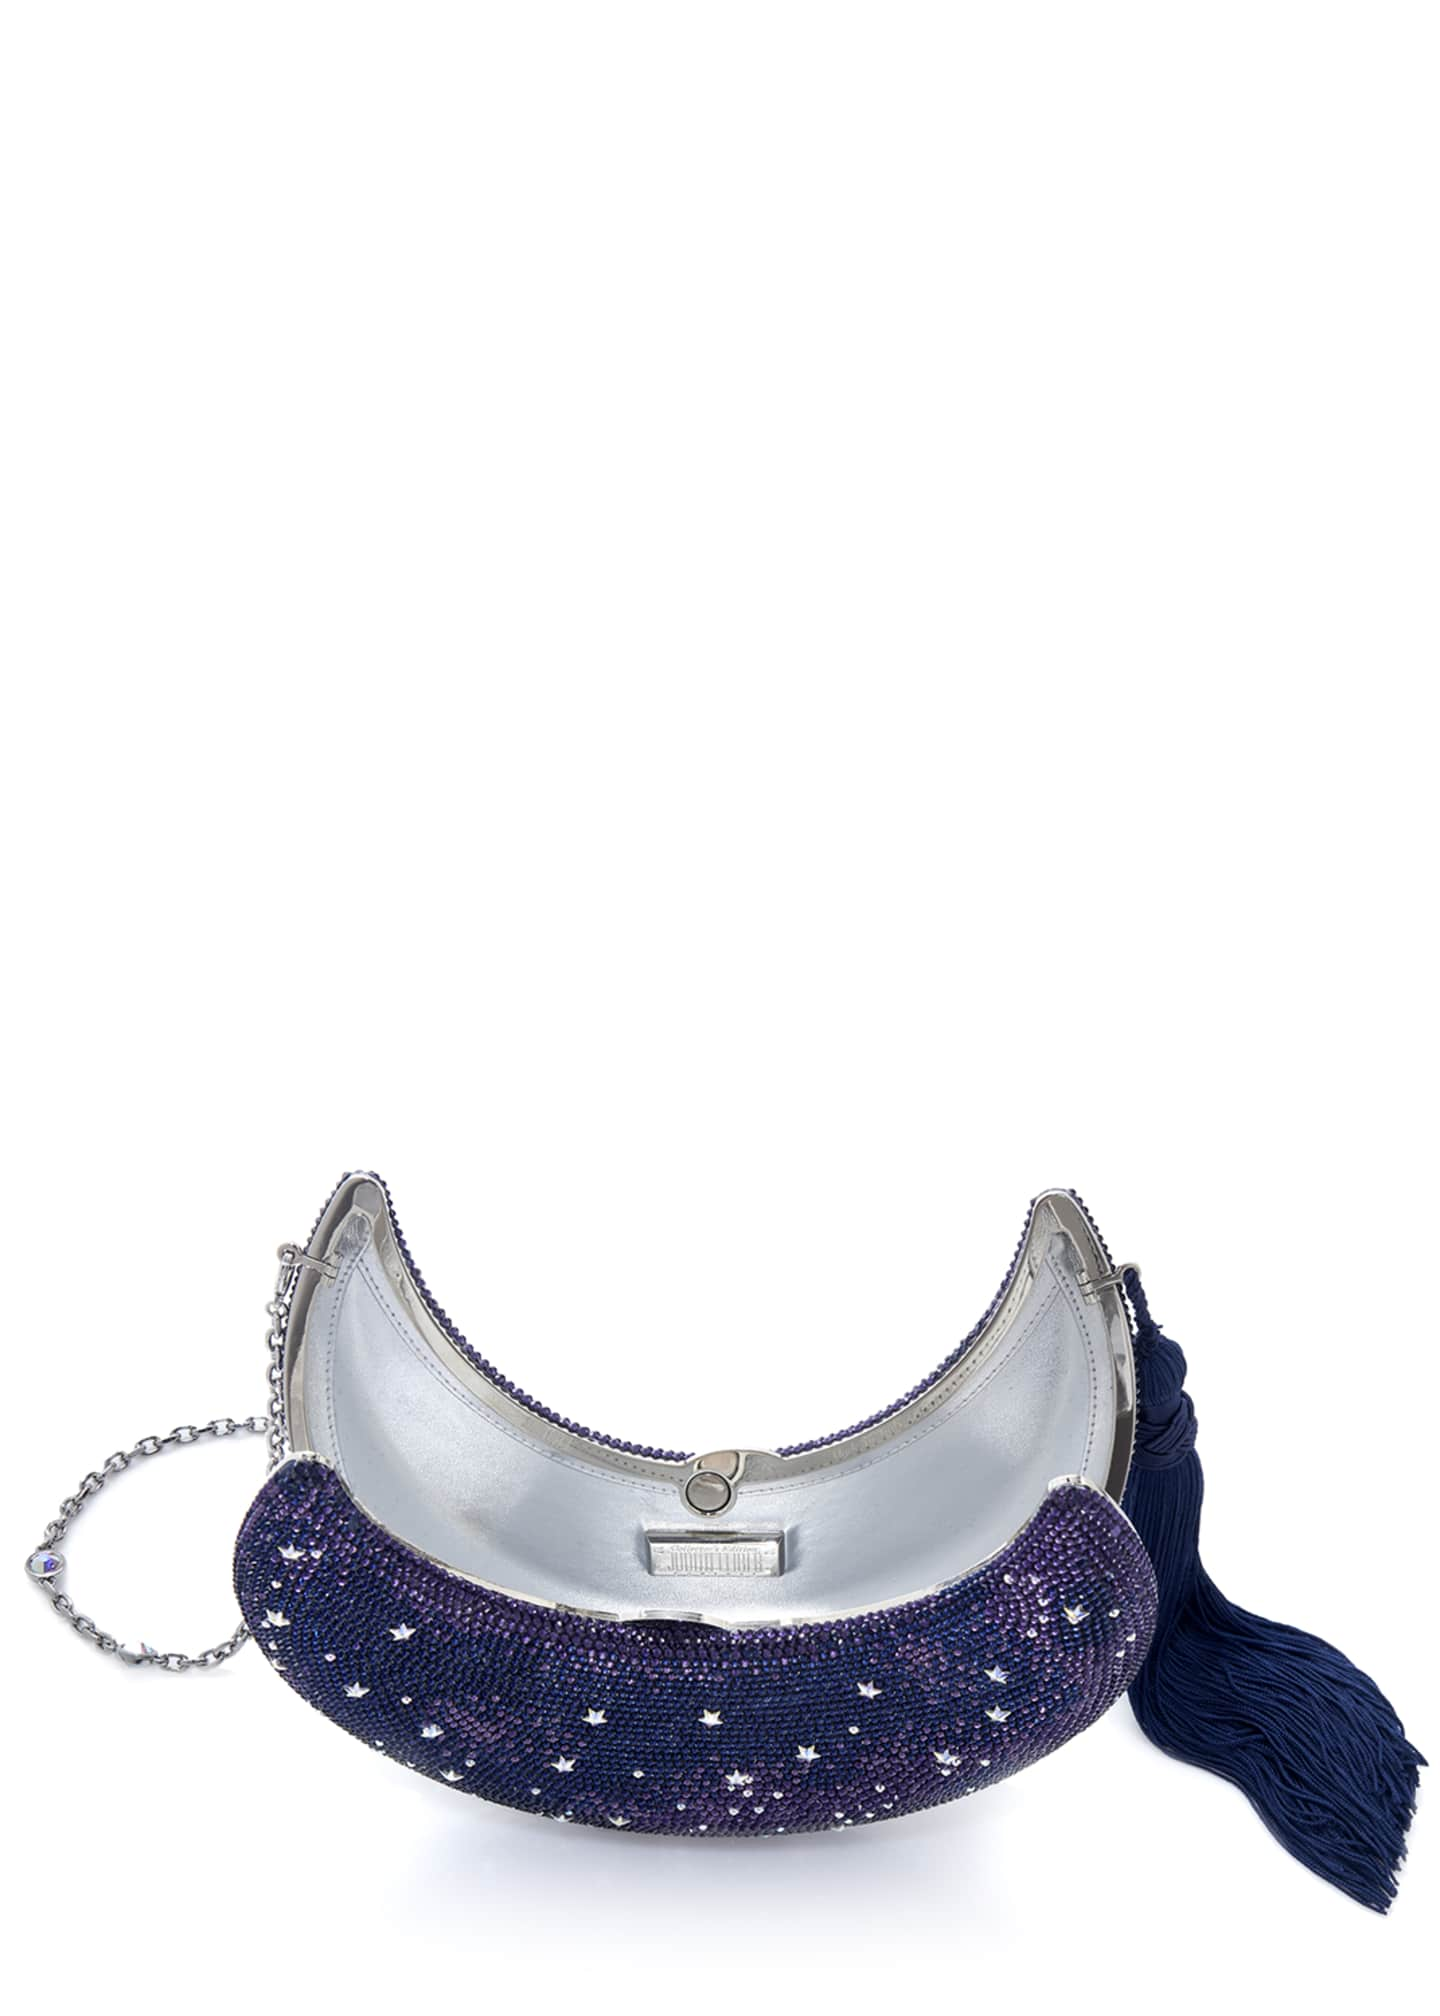 Image 2 of 3: Crescent Moon Galaxy Crystal Clutch Bag